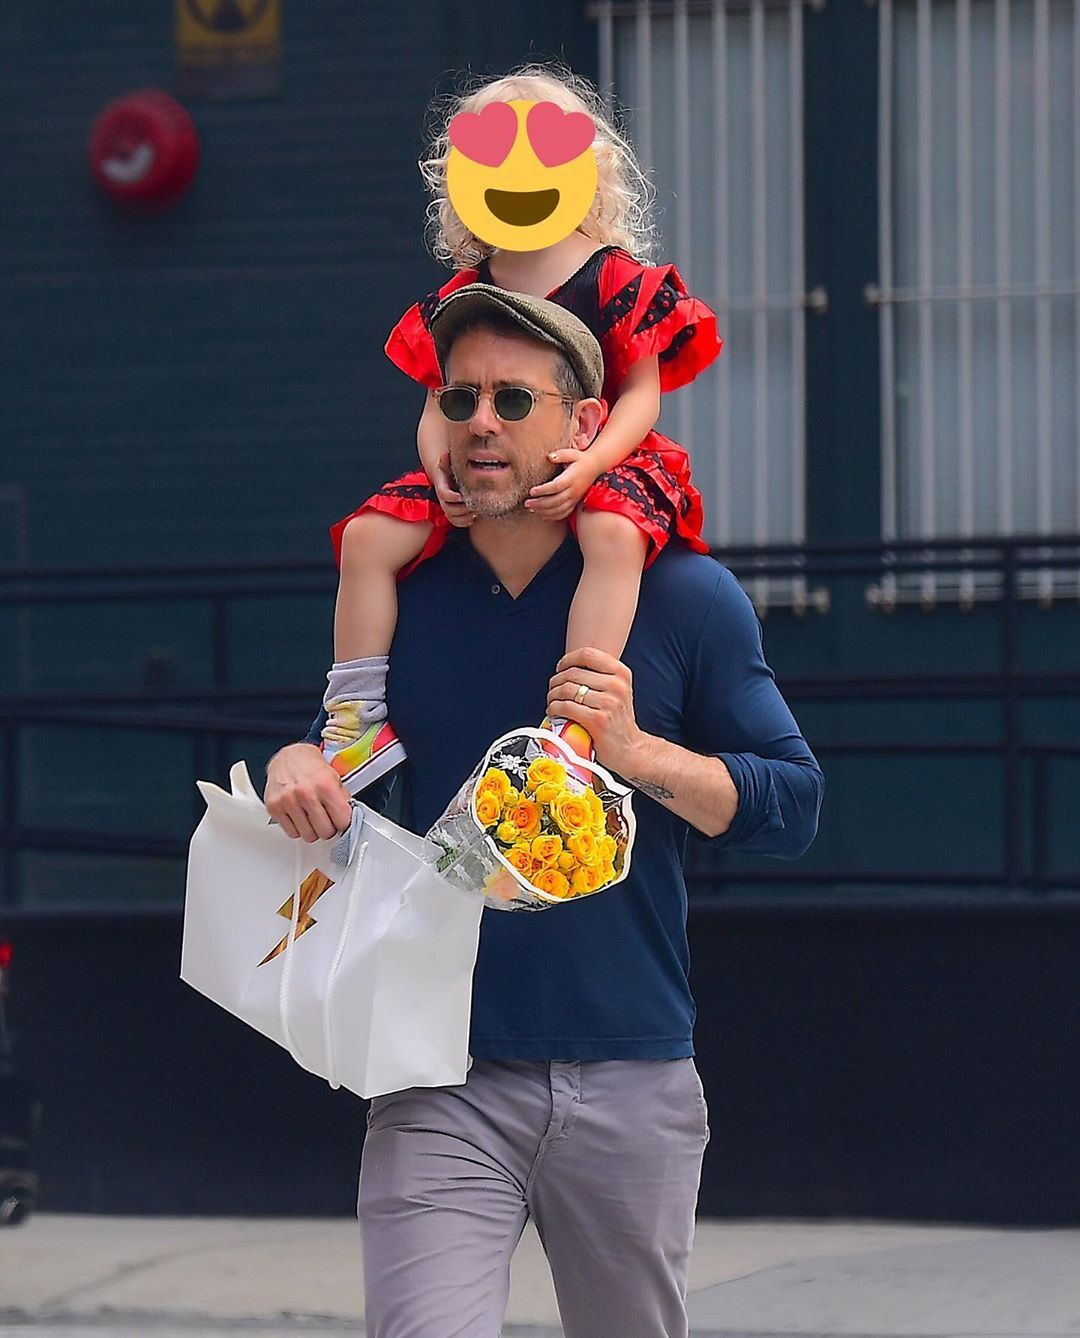 Ryan Reynolds took his daughter, Inez, to a dress up party